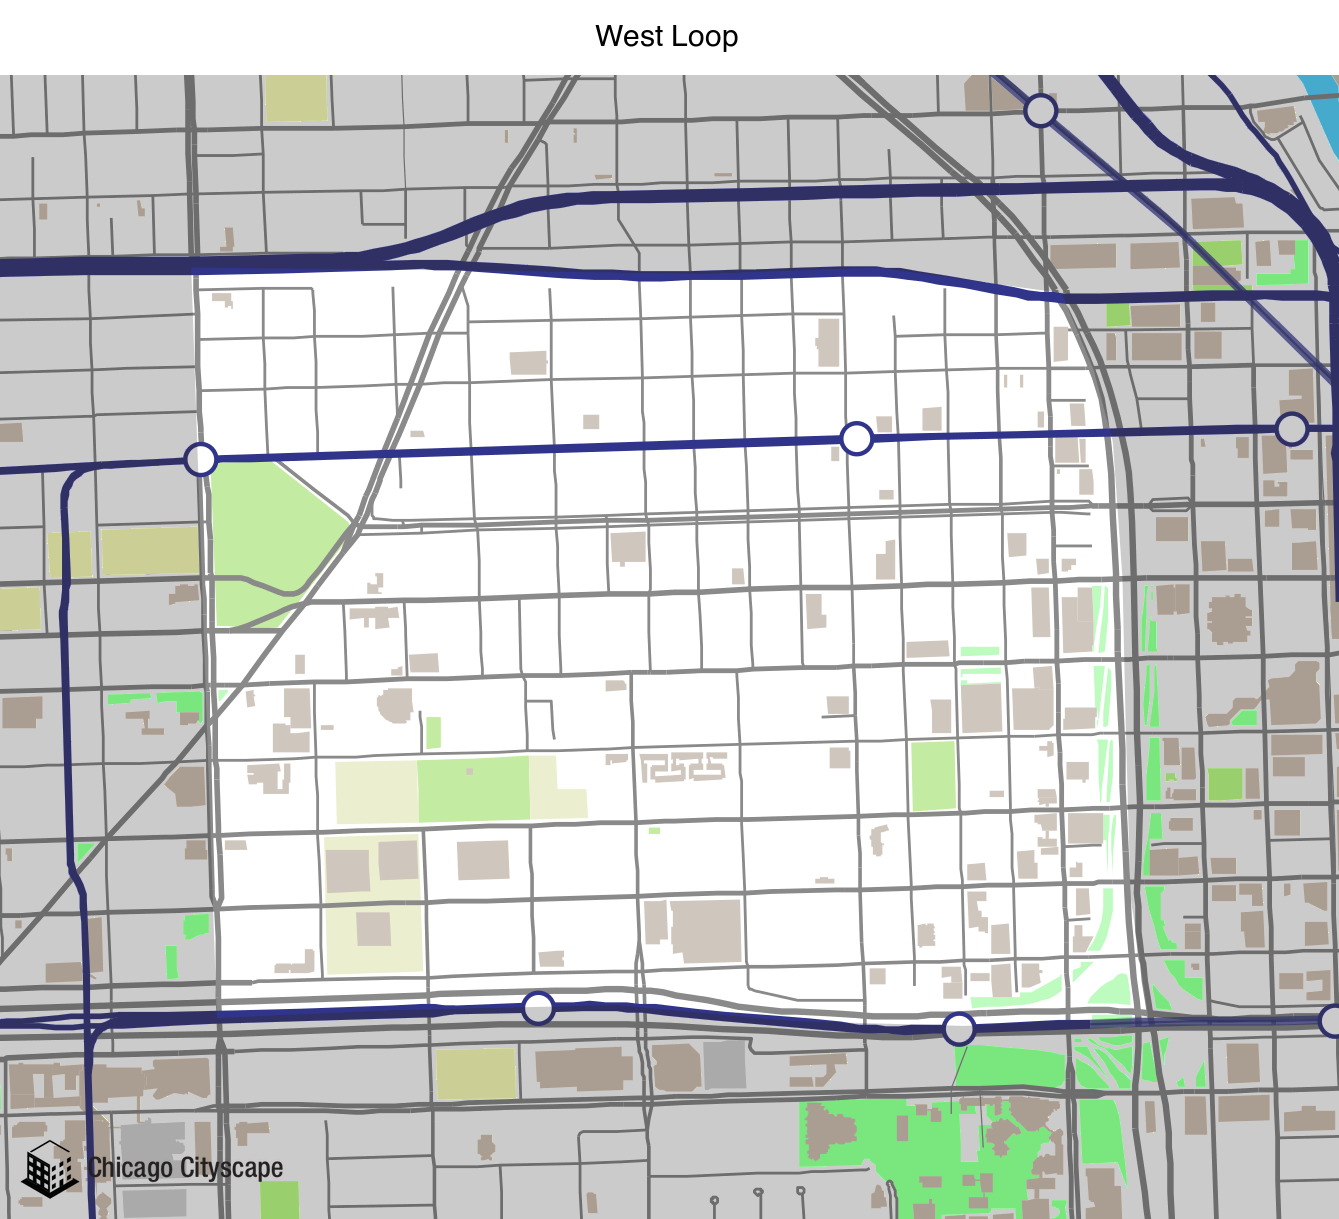 Map Of West Loop Chicago Chicago Cityscape   Map of building projects, properties, and